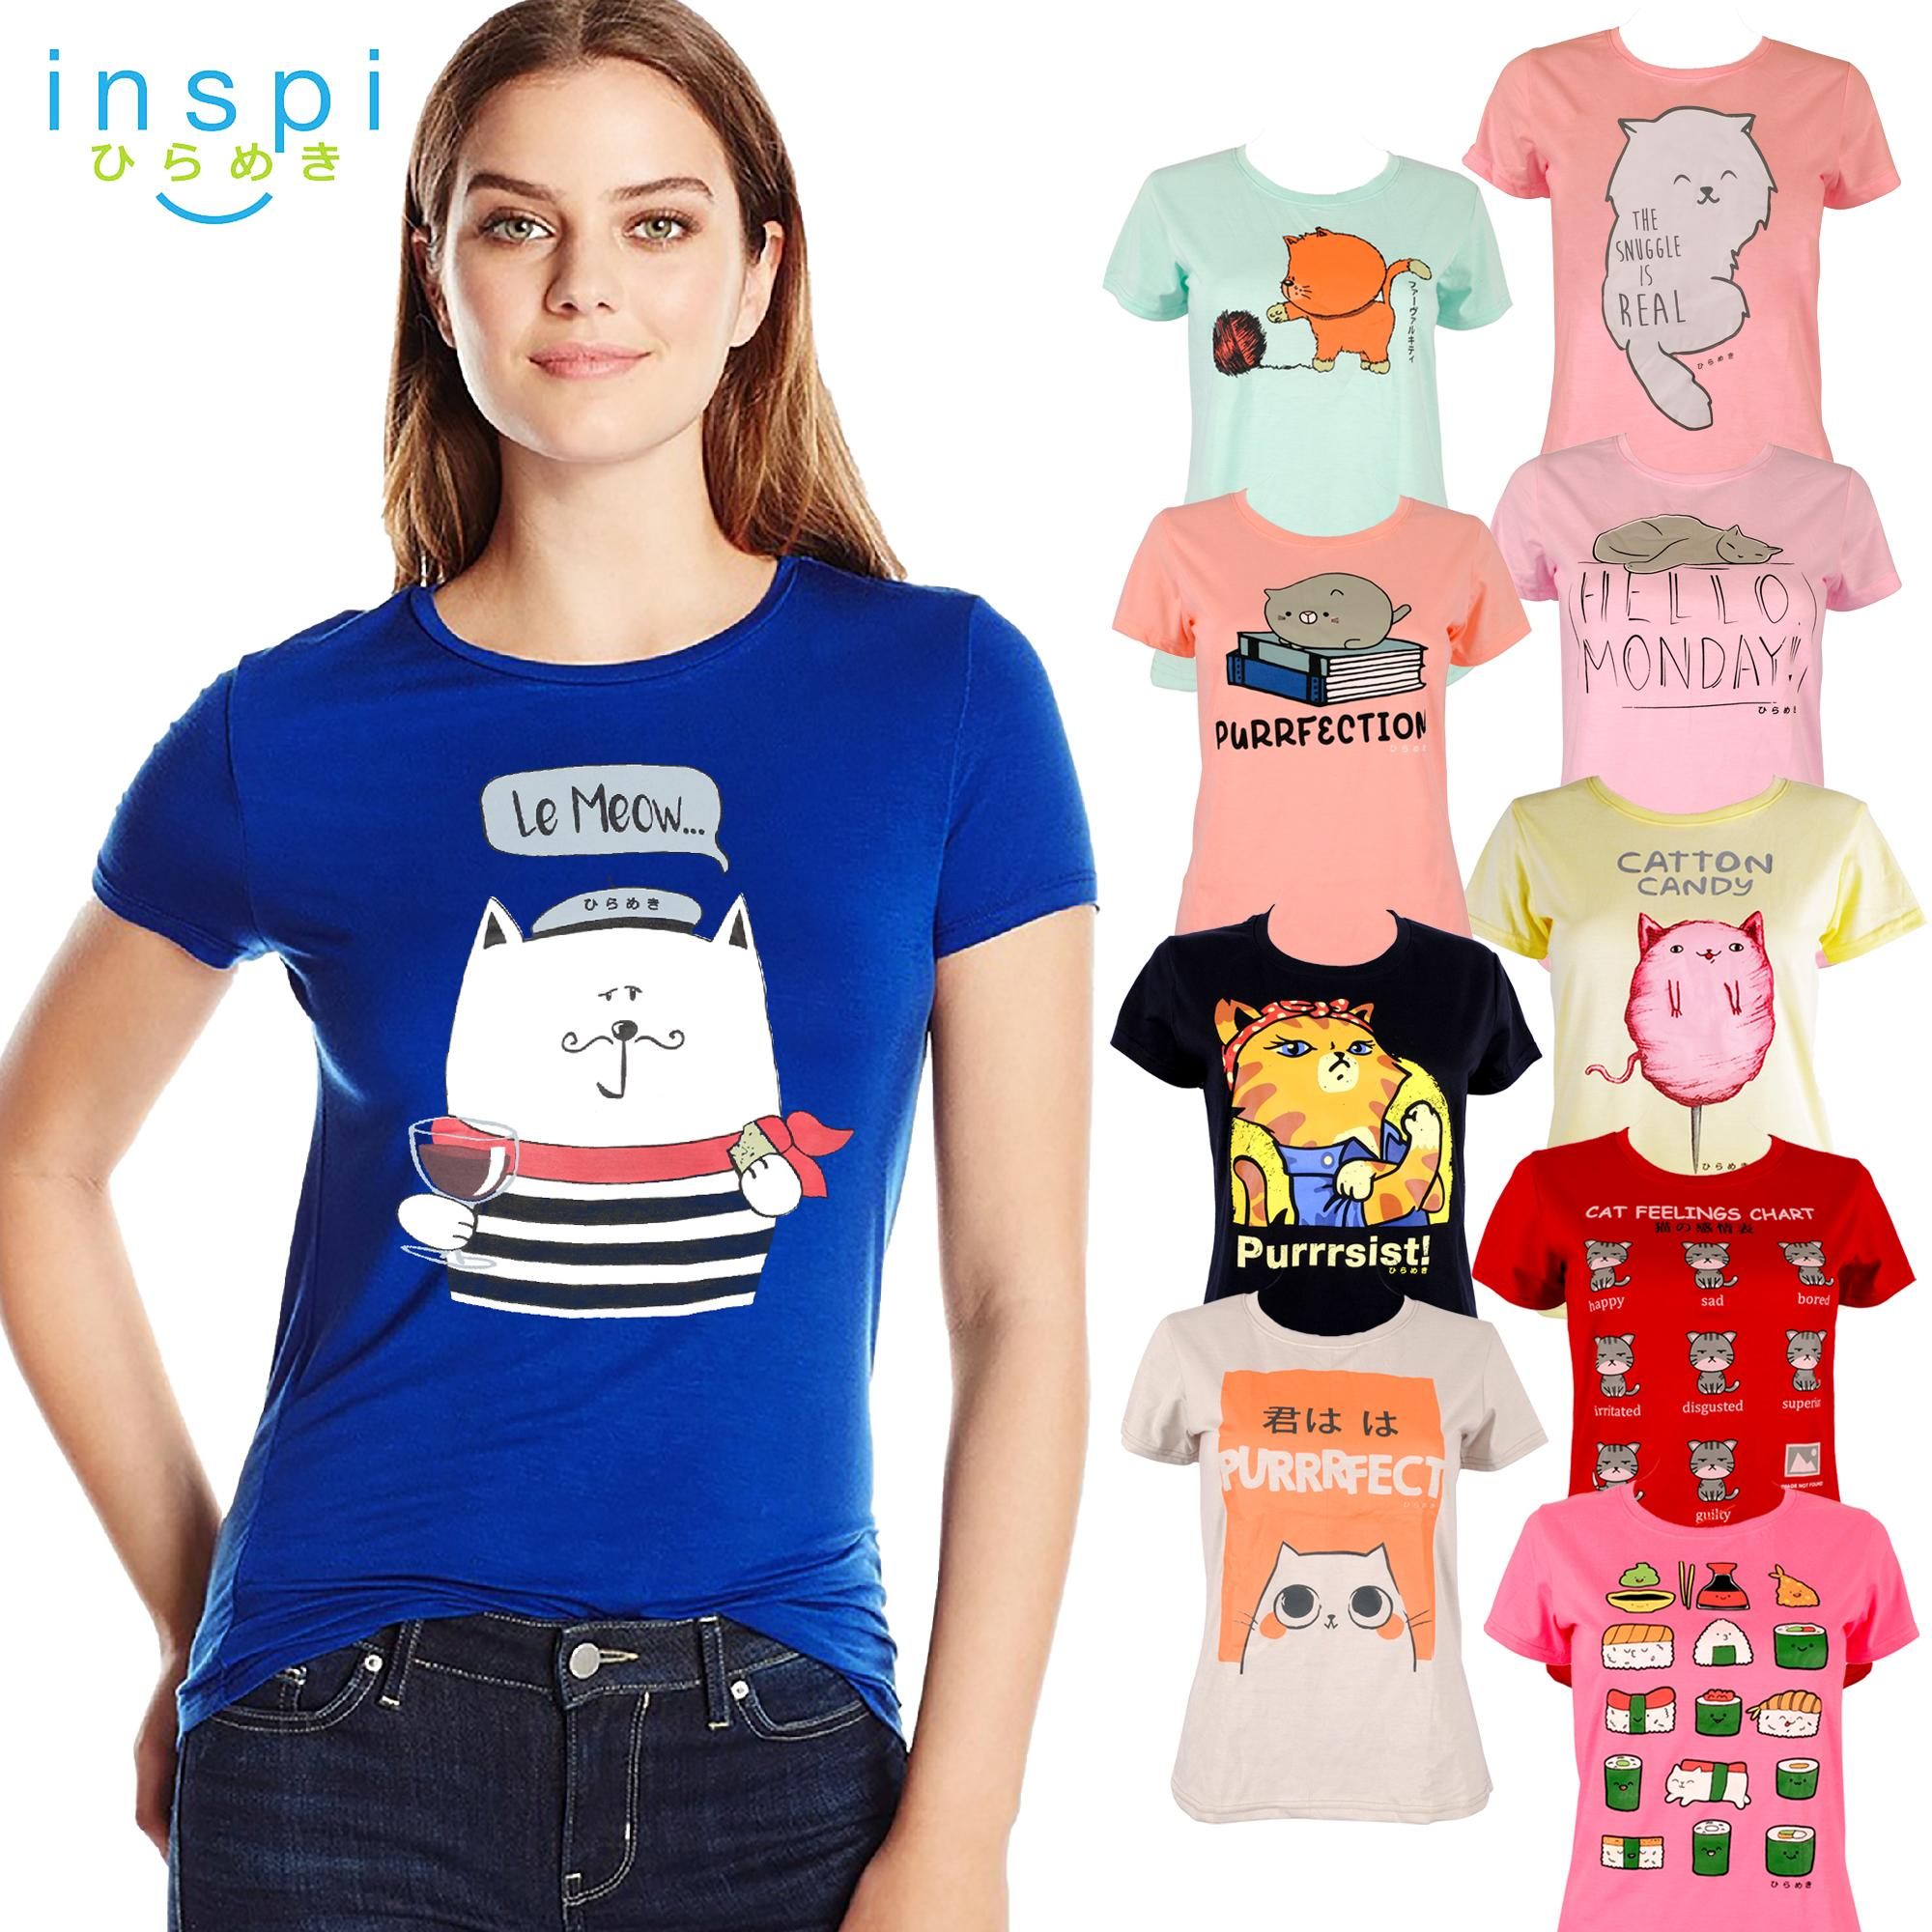 58e93081106c INSPI Tees Ladies Neko Collection tshirt printed graphic tee Ladies t shirt  shirts women tshirts for